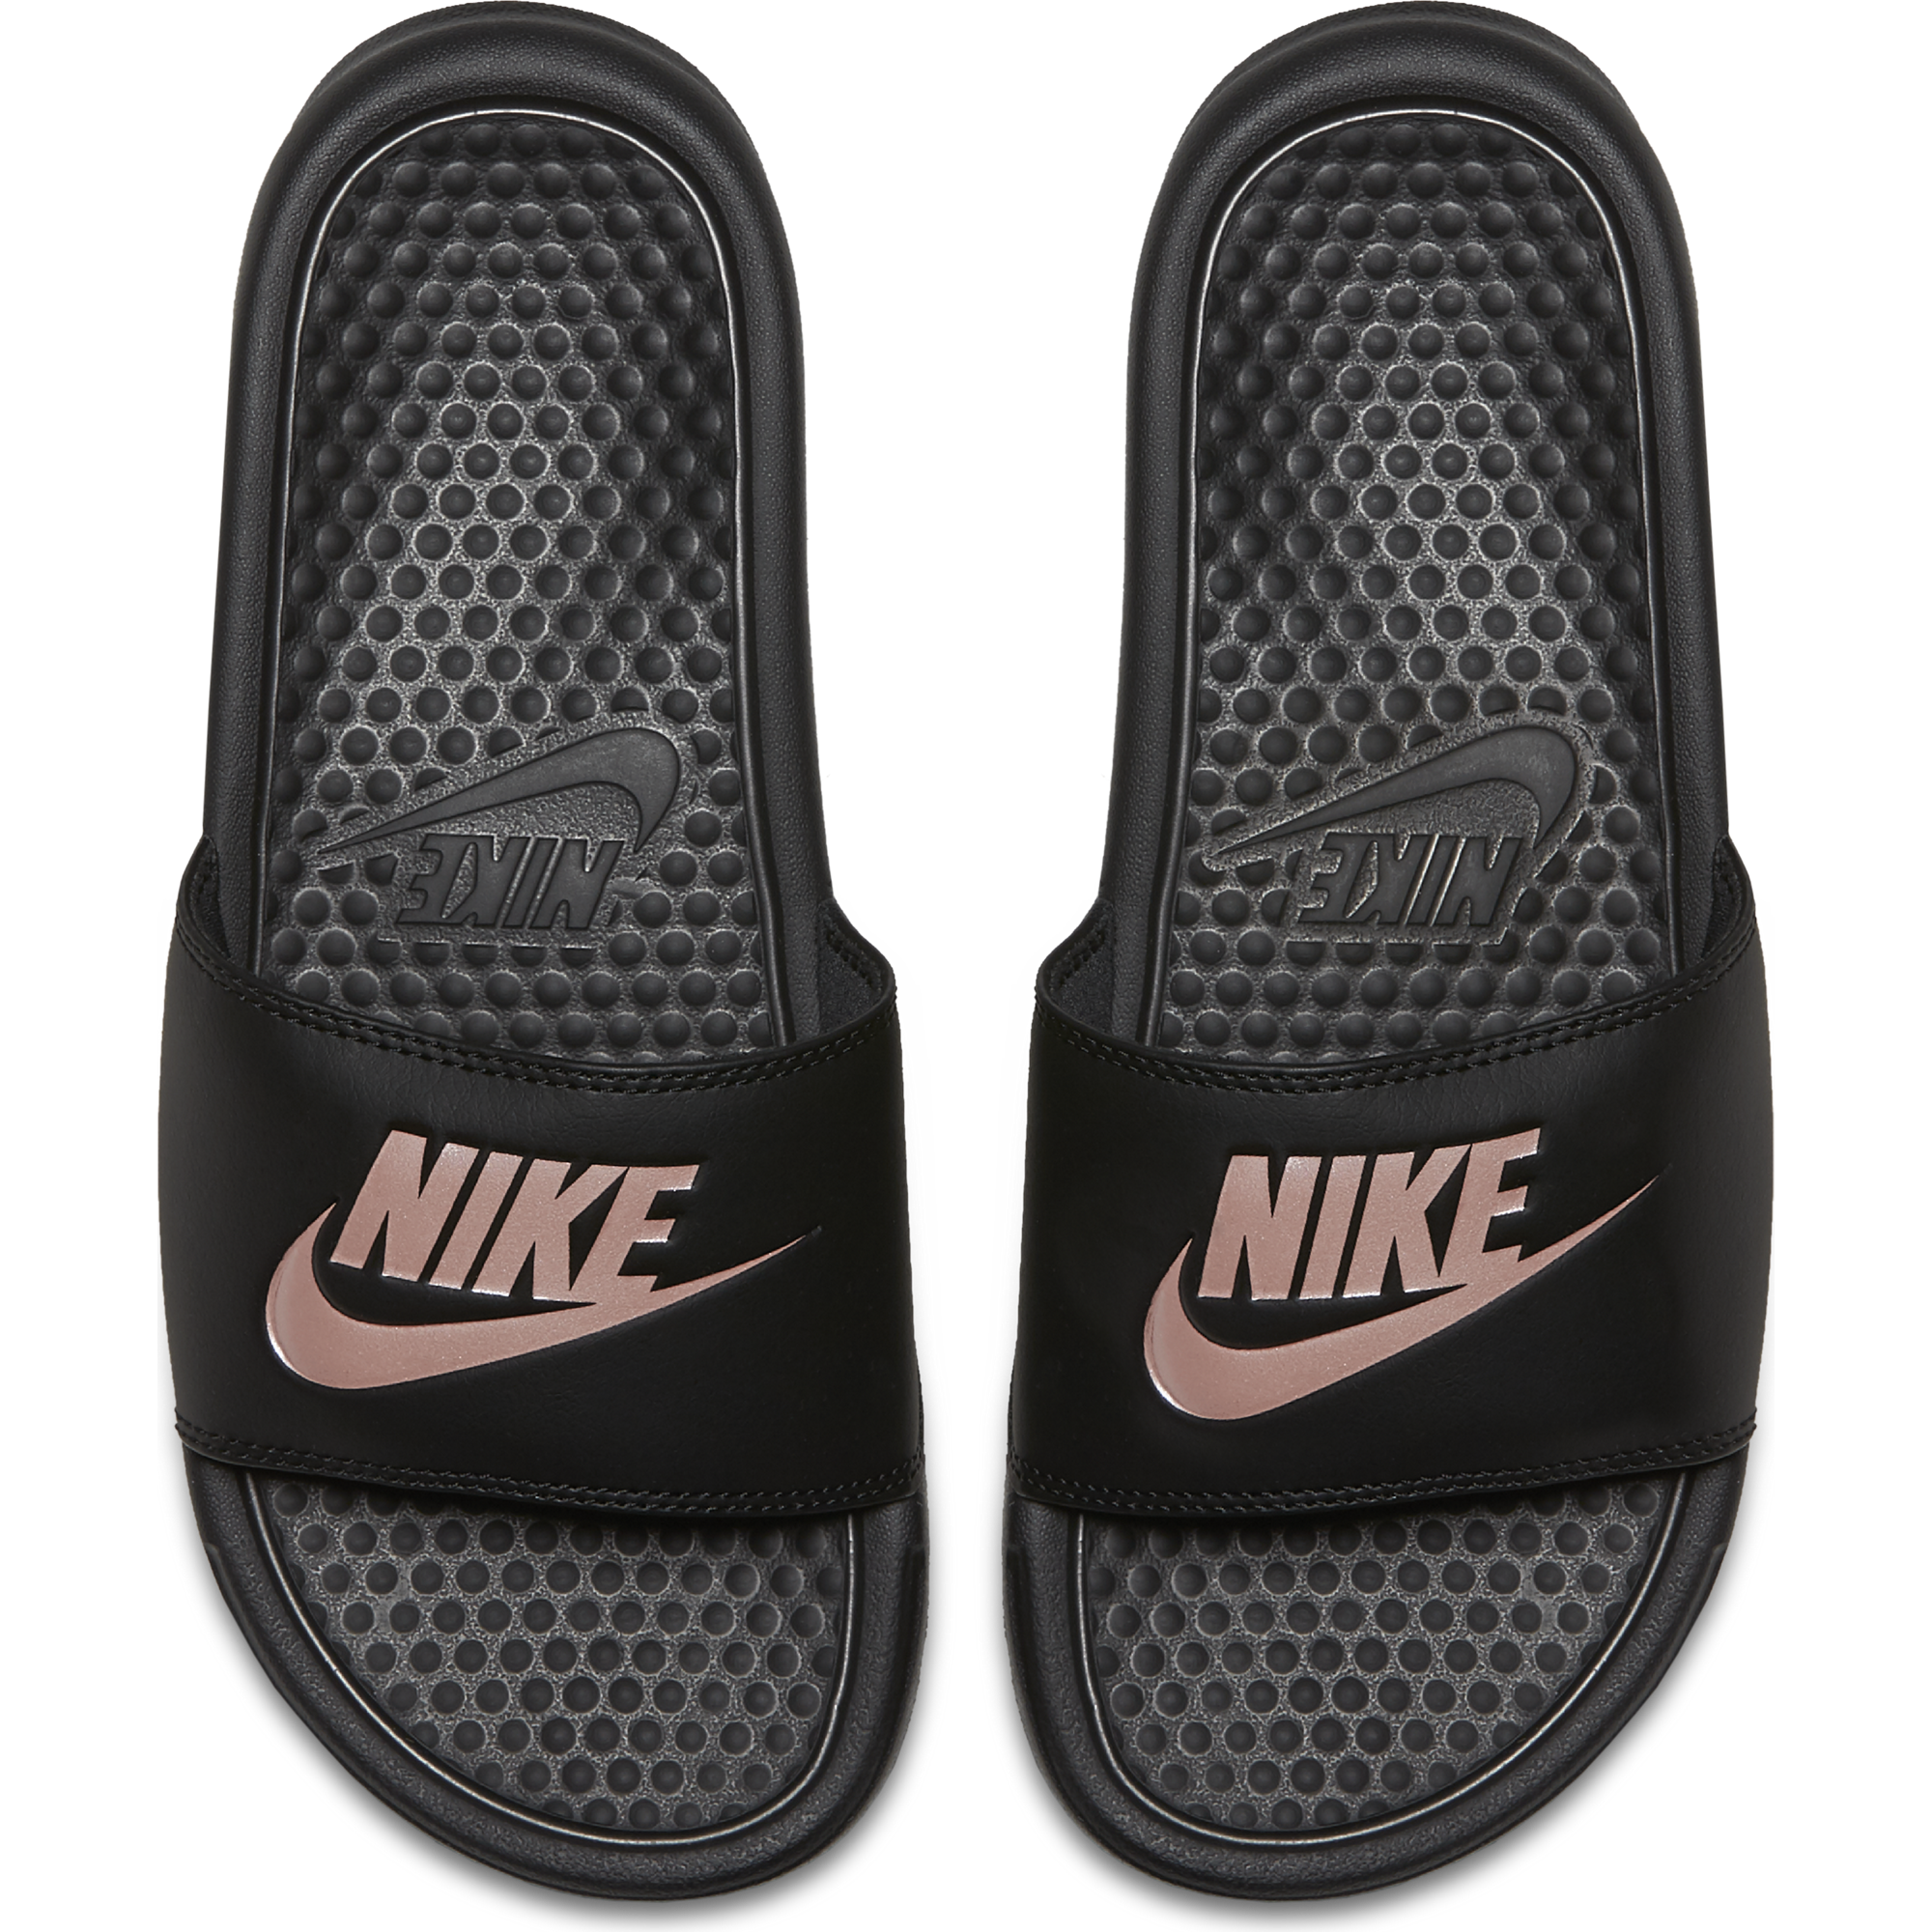 9a53ad36338f Womens Nike Benassi JUST DO IT Sandal - BLK RS GOLD - Culture Athletics